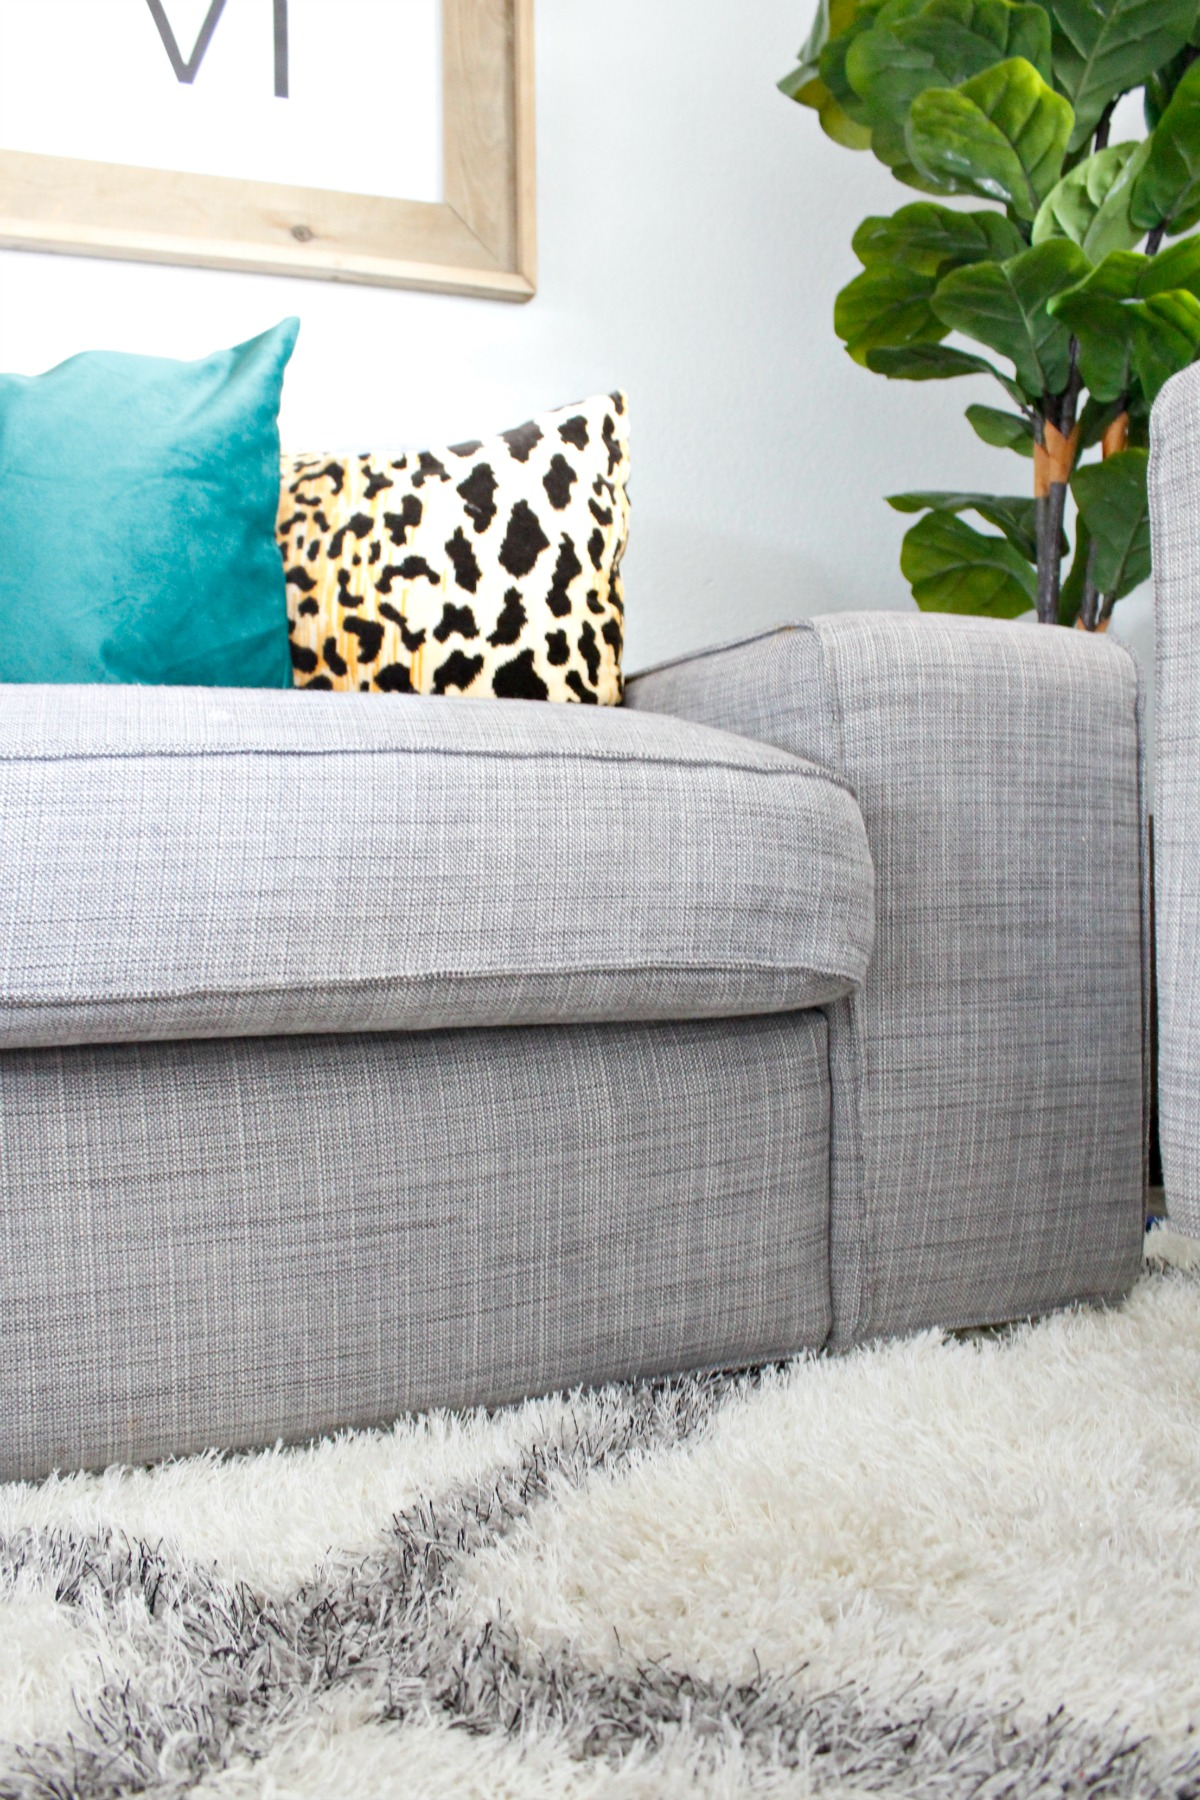 Ikea Kivik Chaise Lounge Google Search: Kivik Sofa Legs Hack